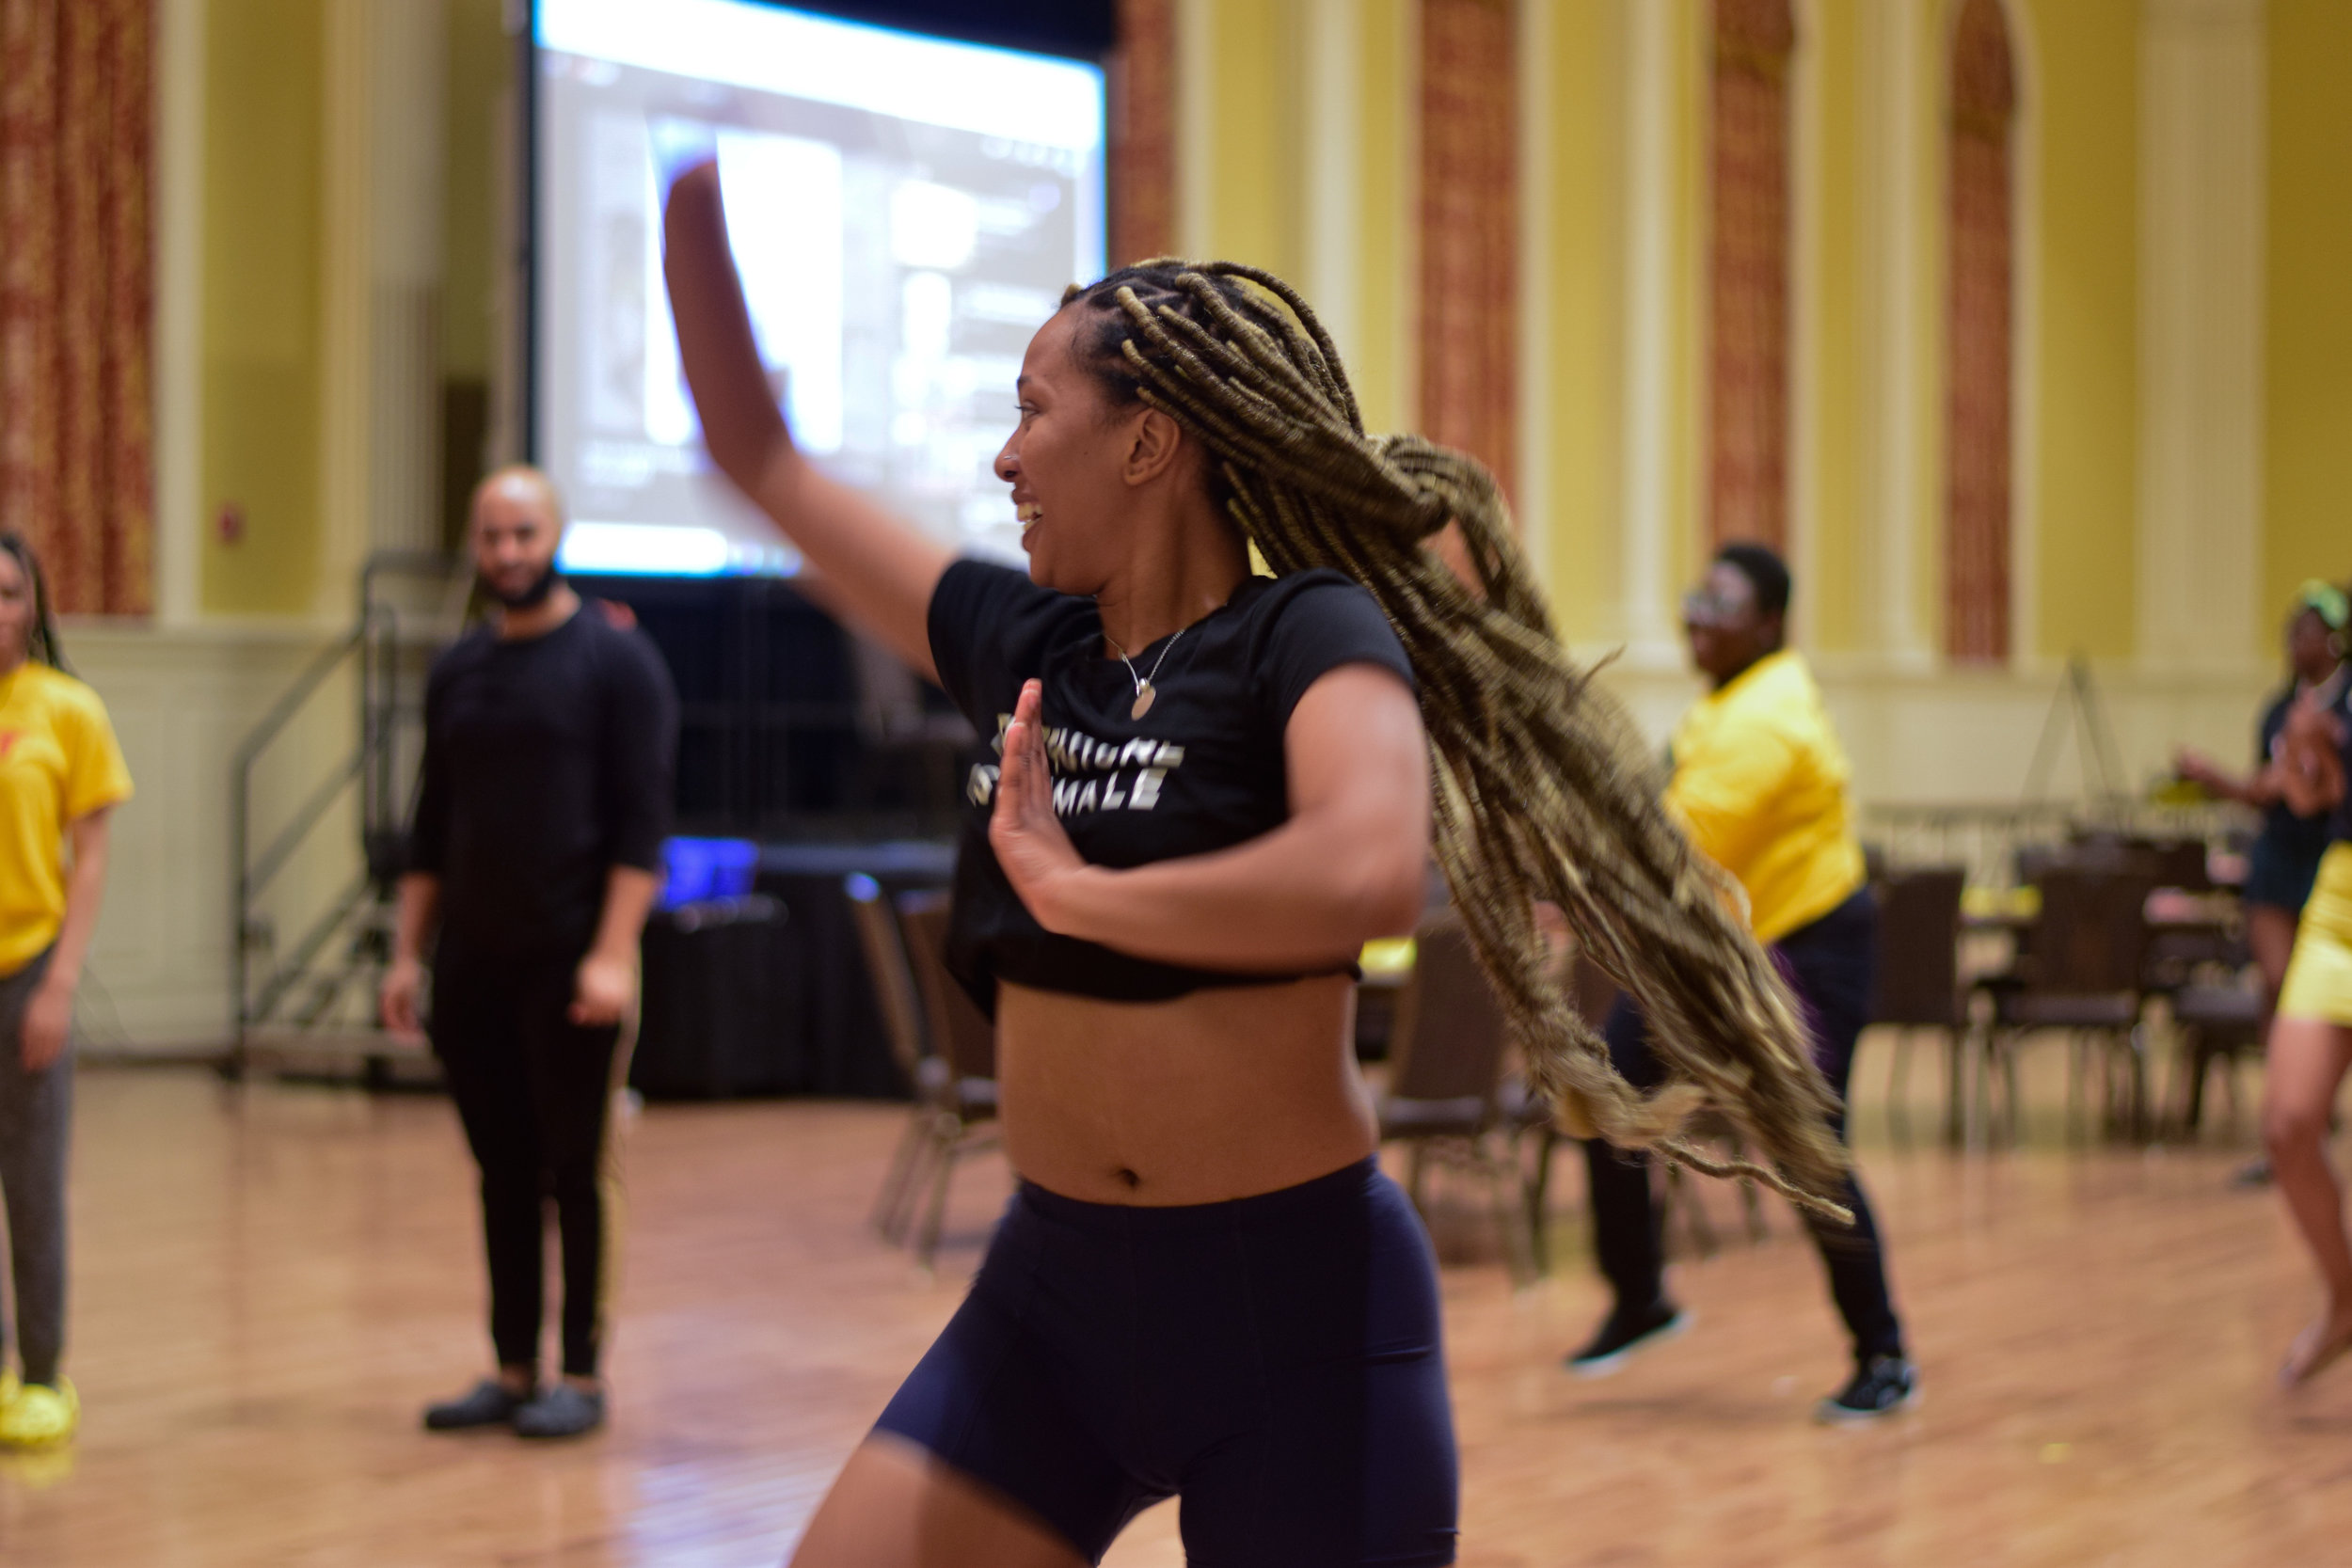 Nthabiseng Cooper, a sophomore government and politics and African American studies double major, teaches attendees the first half of some choreography at Maryland MANE's My Black Is Beautiful event on April 17. Cooper is a dancer on Riddim Ryderz, a Caribbean dance troupe. (Amina Lampkin/The Black Explosion)